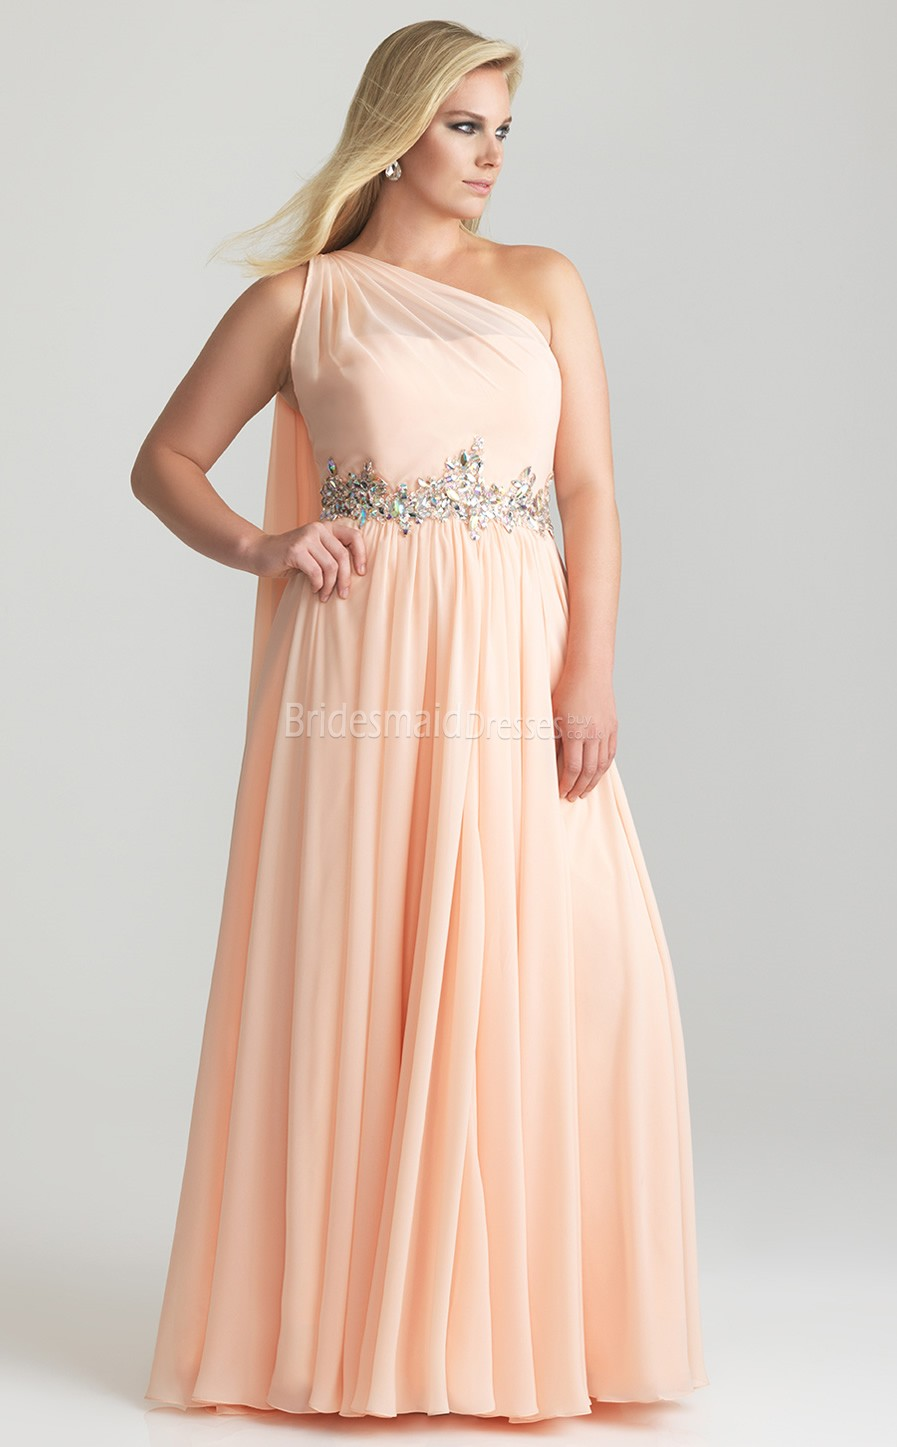 brides guide to plus size bridesmaid dresses. Black Bedroom Furniture Sets. Home Design Ideas